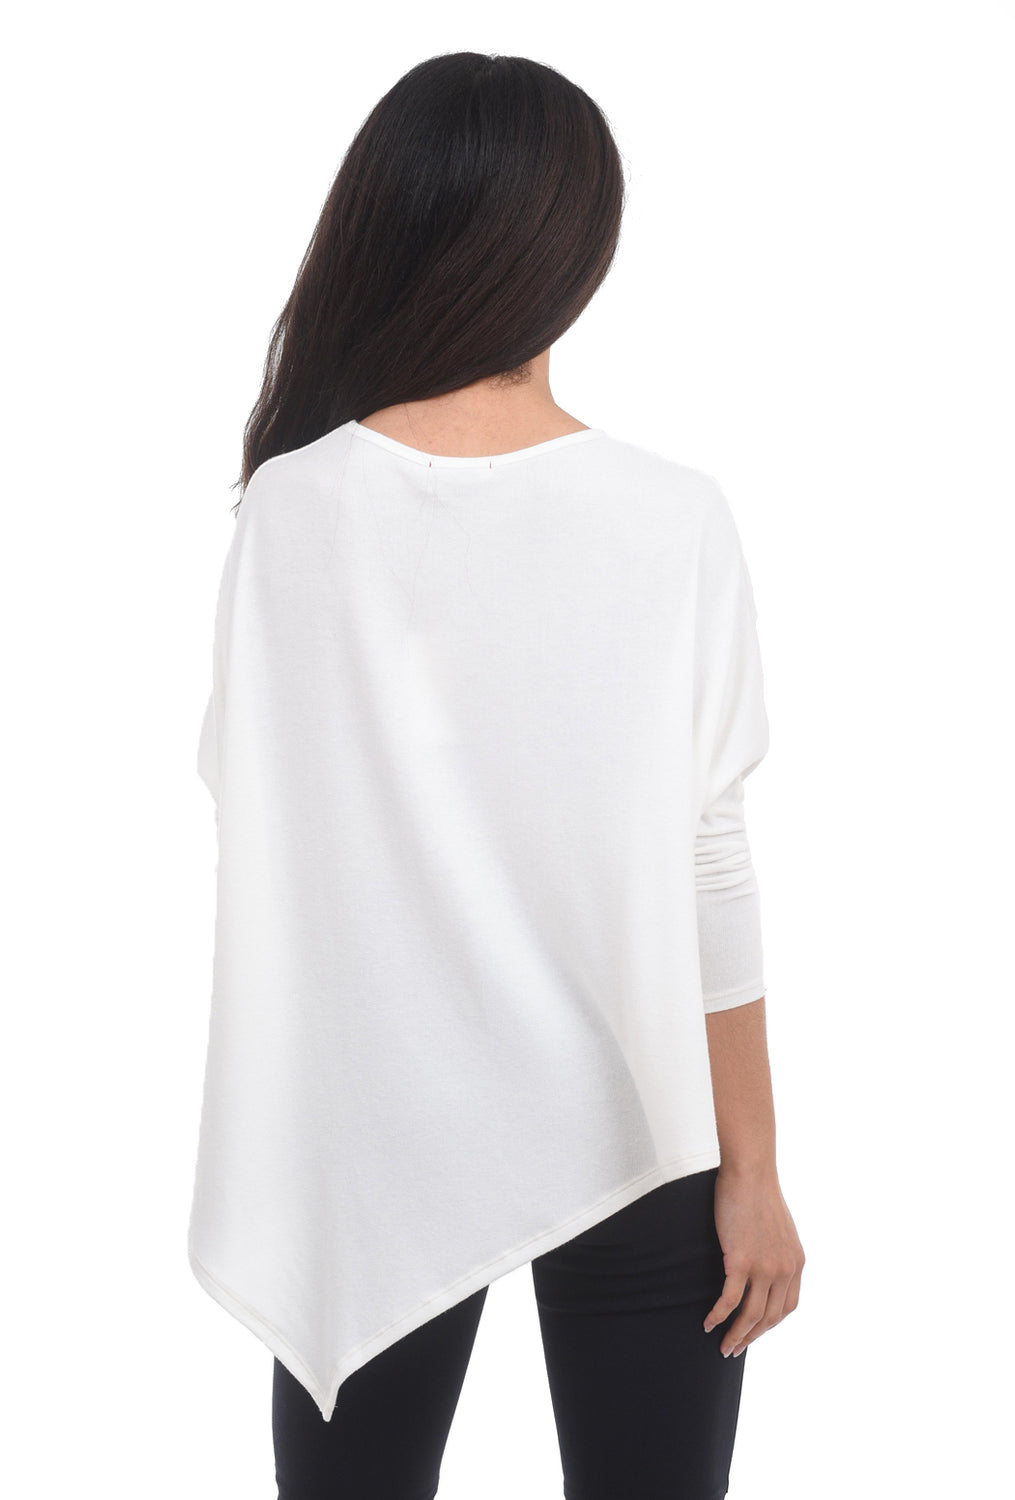 Stark x Asymmetric Soft Top, Natural